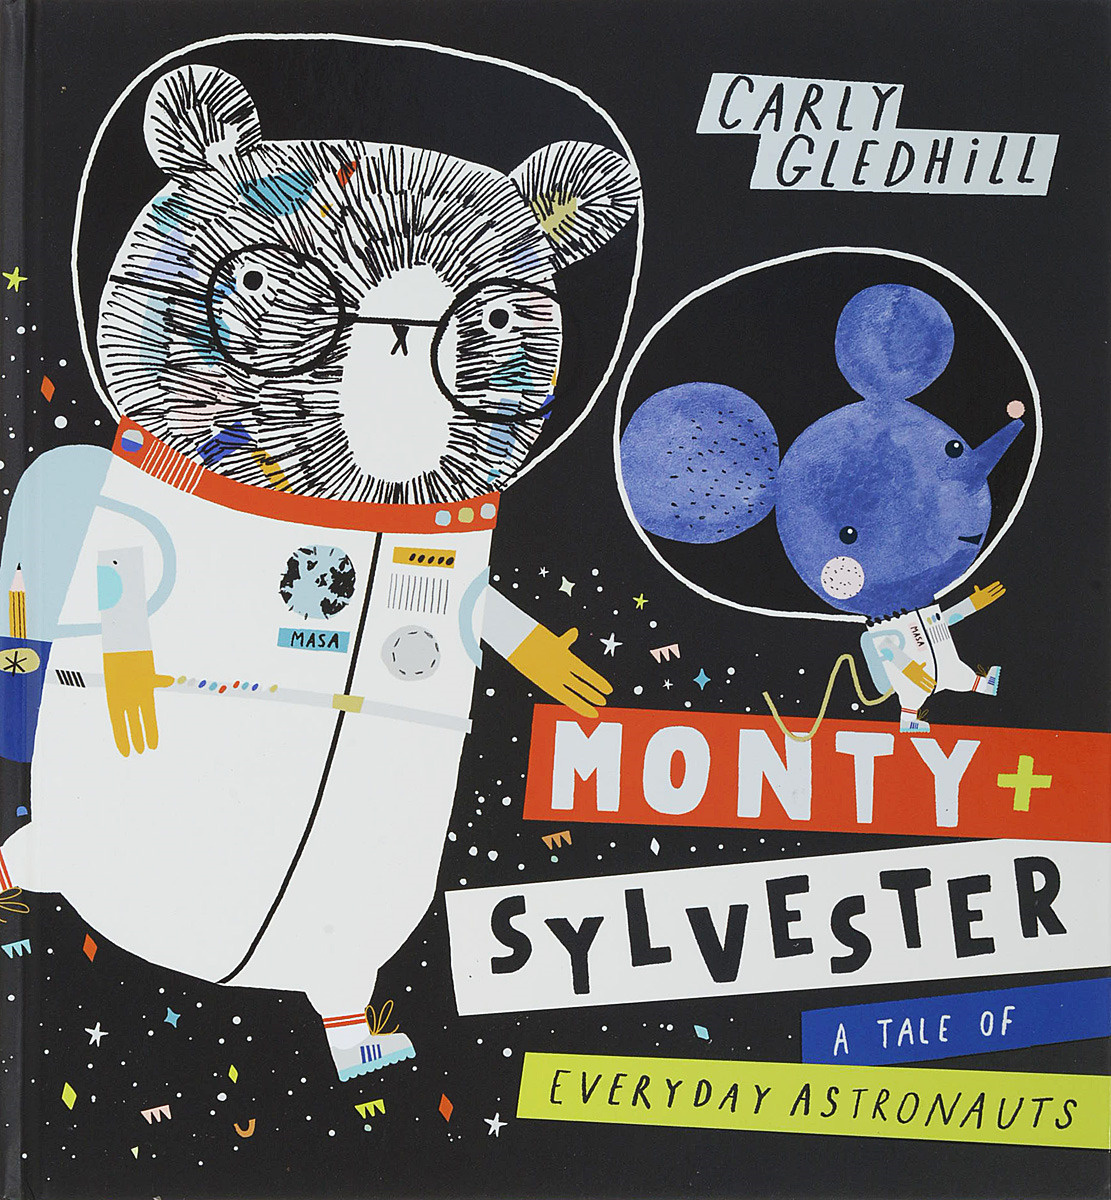 Monty and Sylvester: A Tale of Everyday Astronauts | Gledhill Carly #1